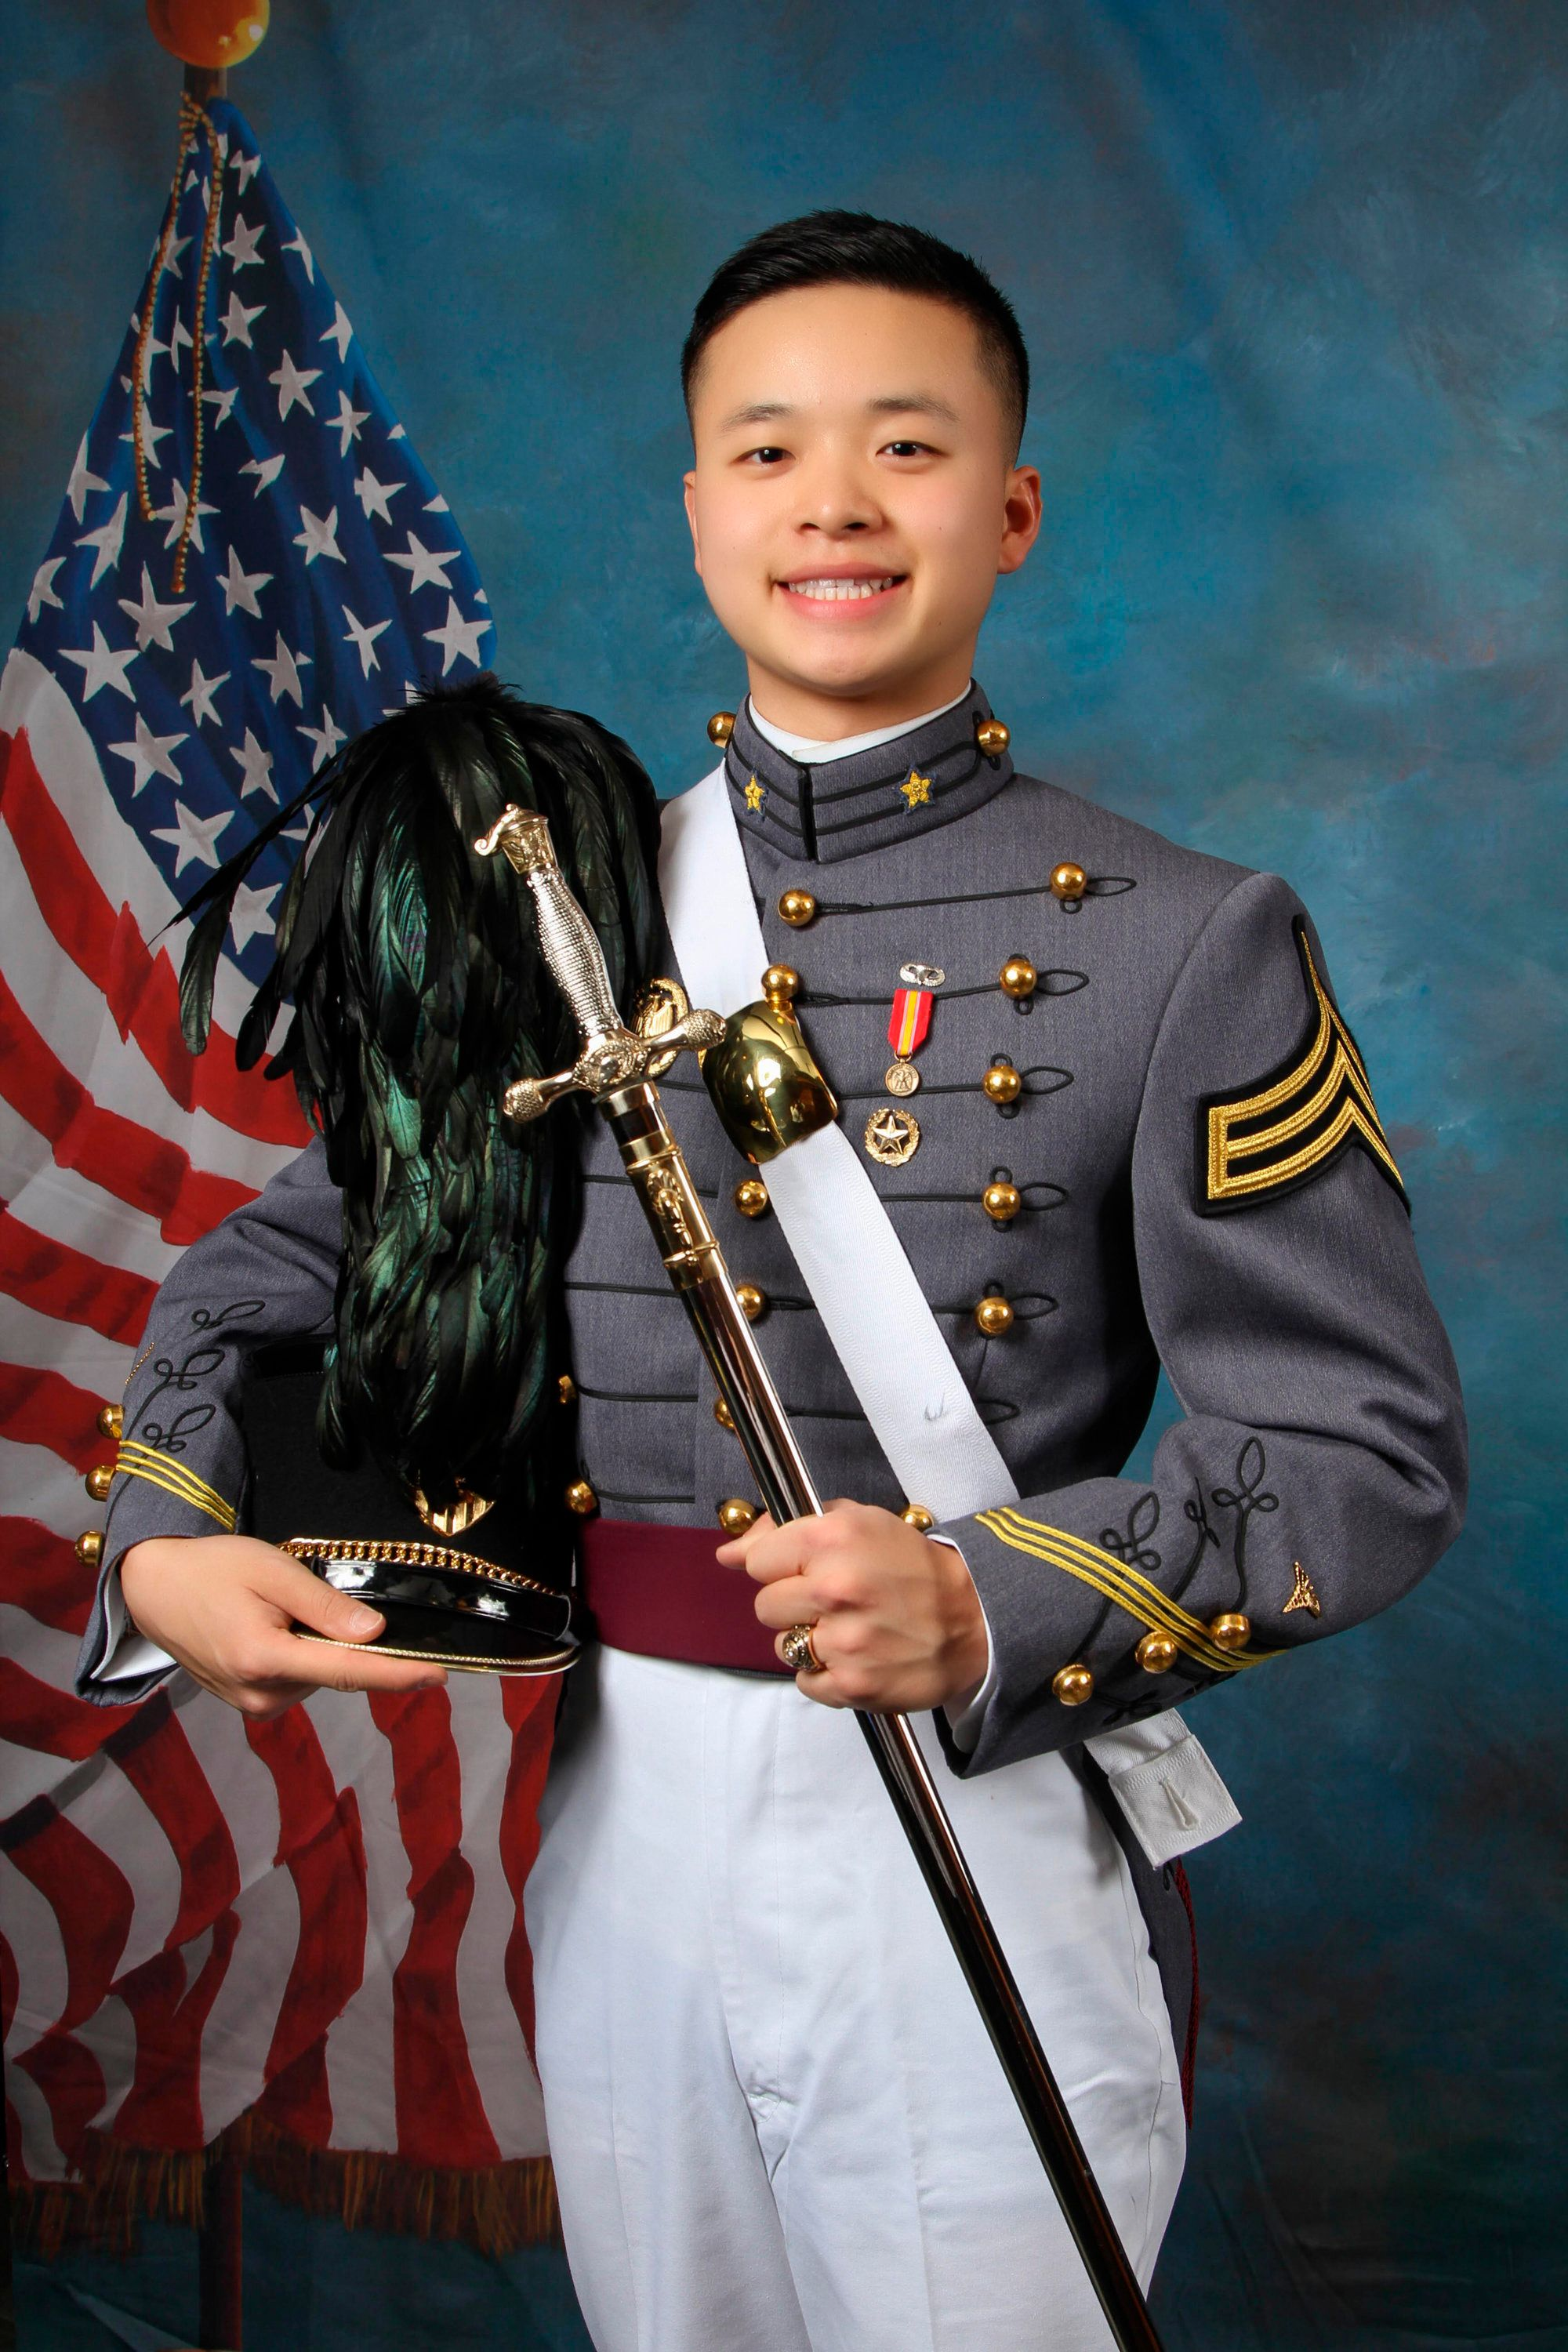 This undated photo provided by the U.S. Military Academy at West Point shows West Point Cadet Peter Zhu who died on Feb. 28, 2019 of injuries he sustained while skiing on Feb. 23 at Victor Constant Ski Area on the academy grounds. The parents of Peter Zhu have received a judge's permission to retrieve his sperm for possible artificial insemination.  (U.S. Military Academy at West Point via AP)